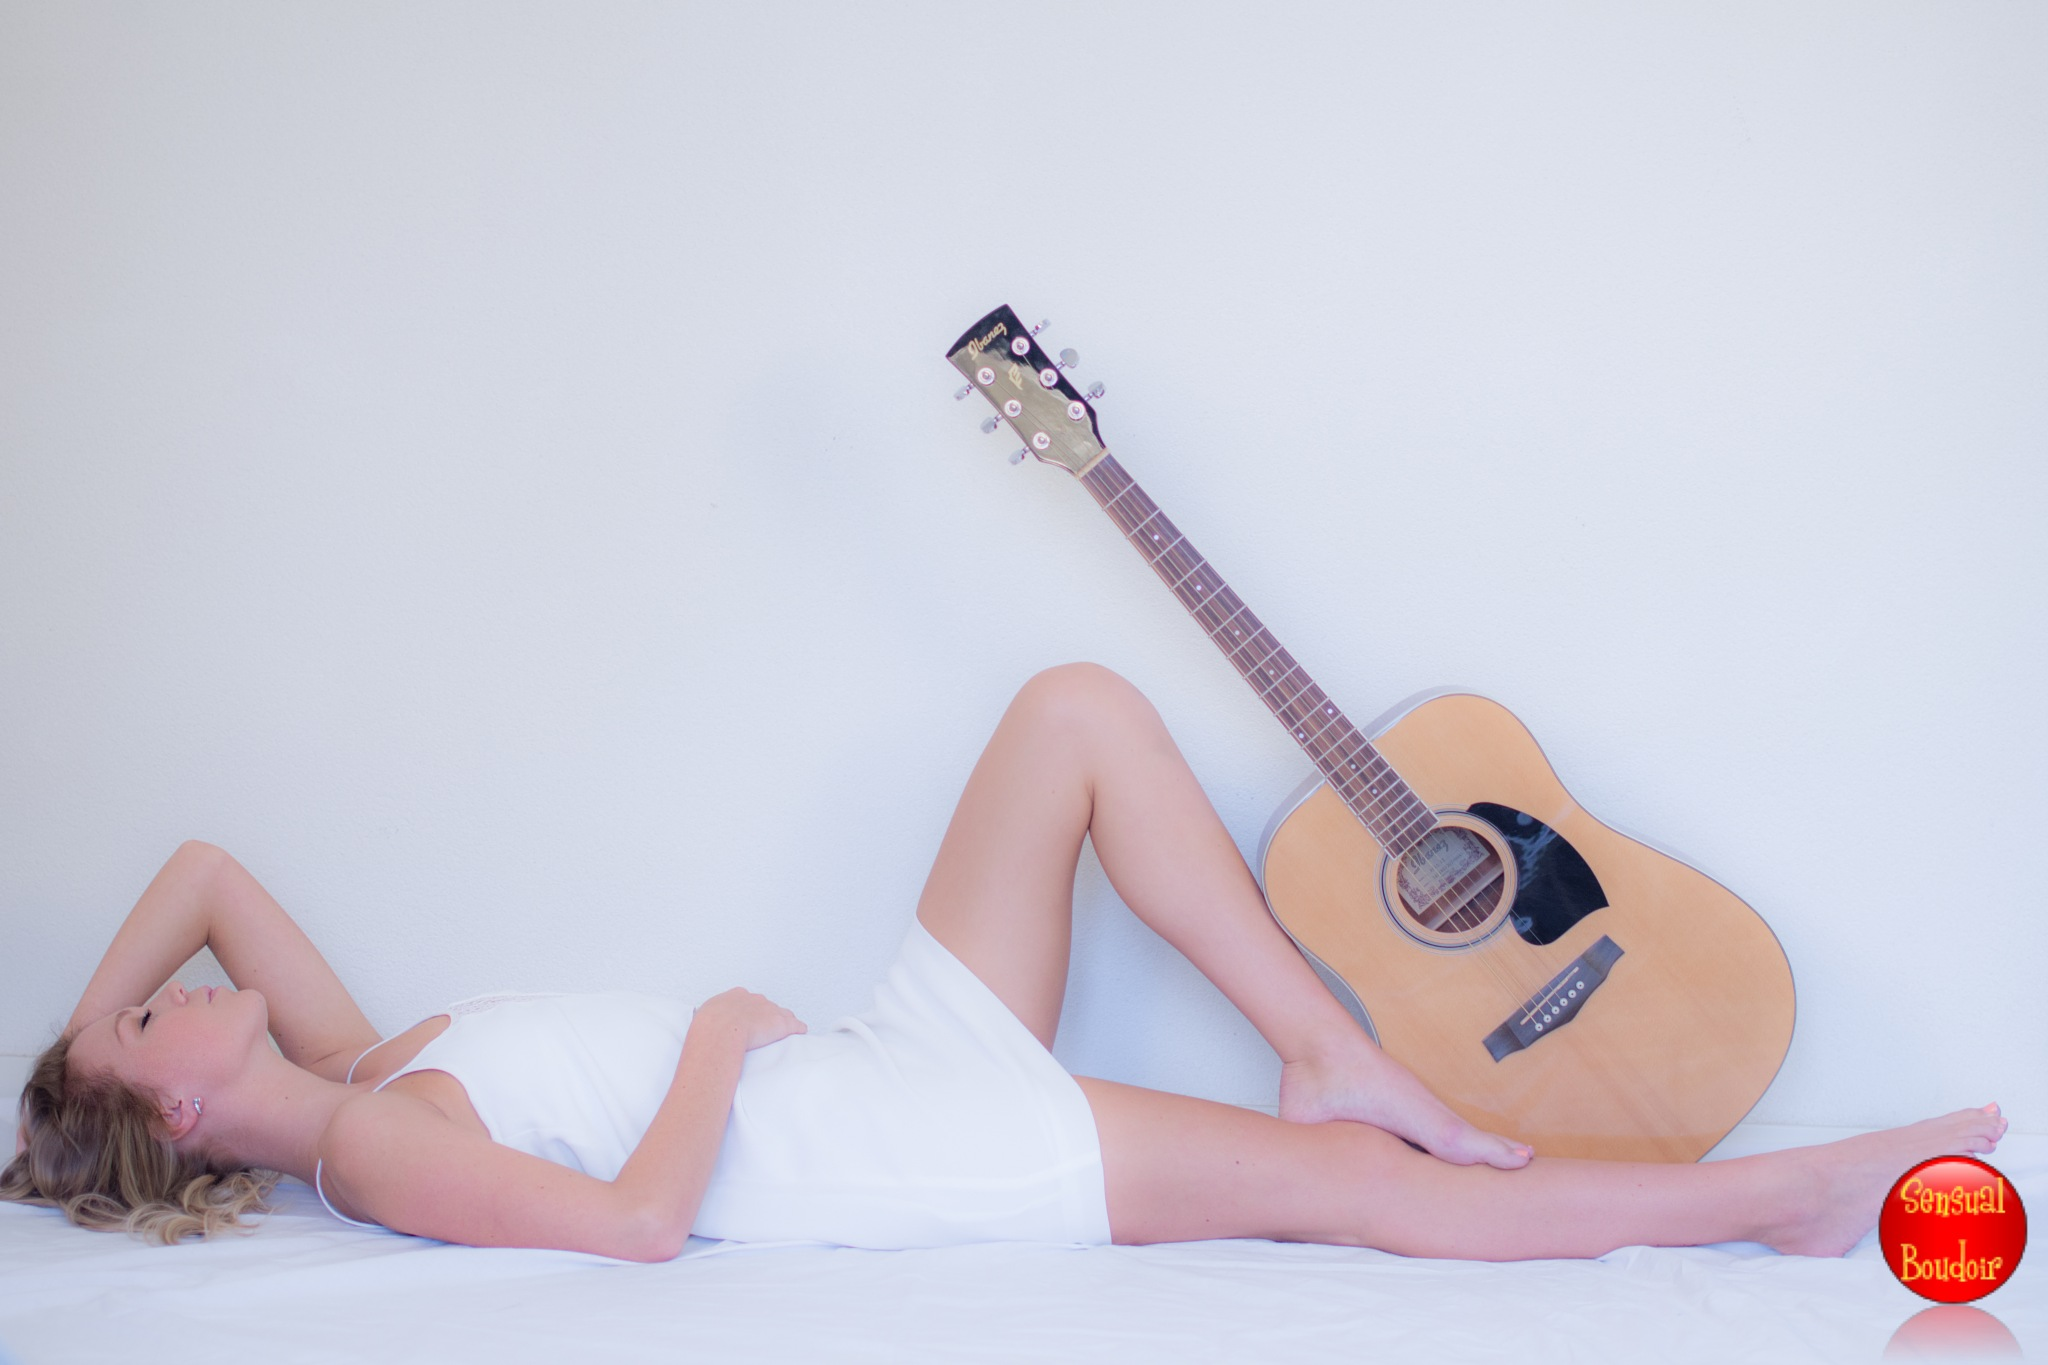 Sexy with a guitar by Sensual and Boudoir